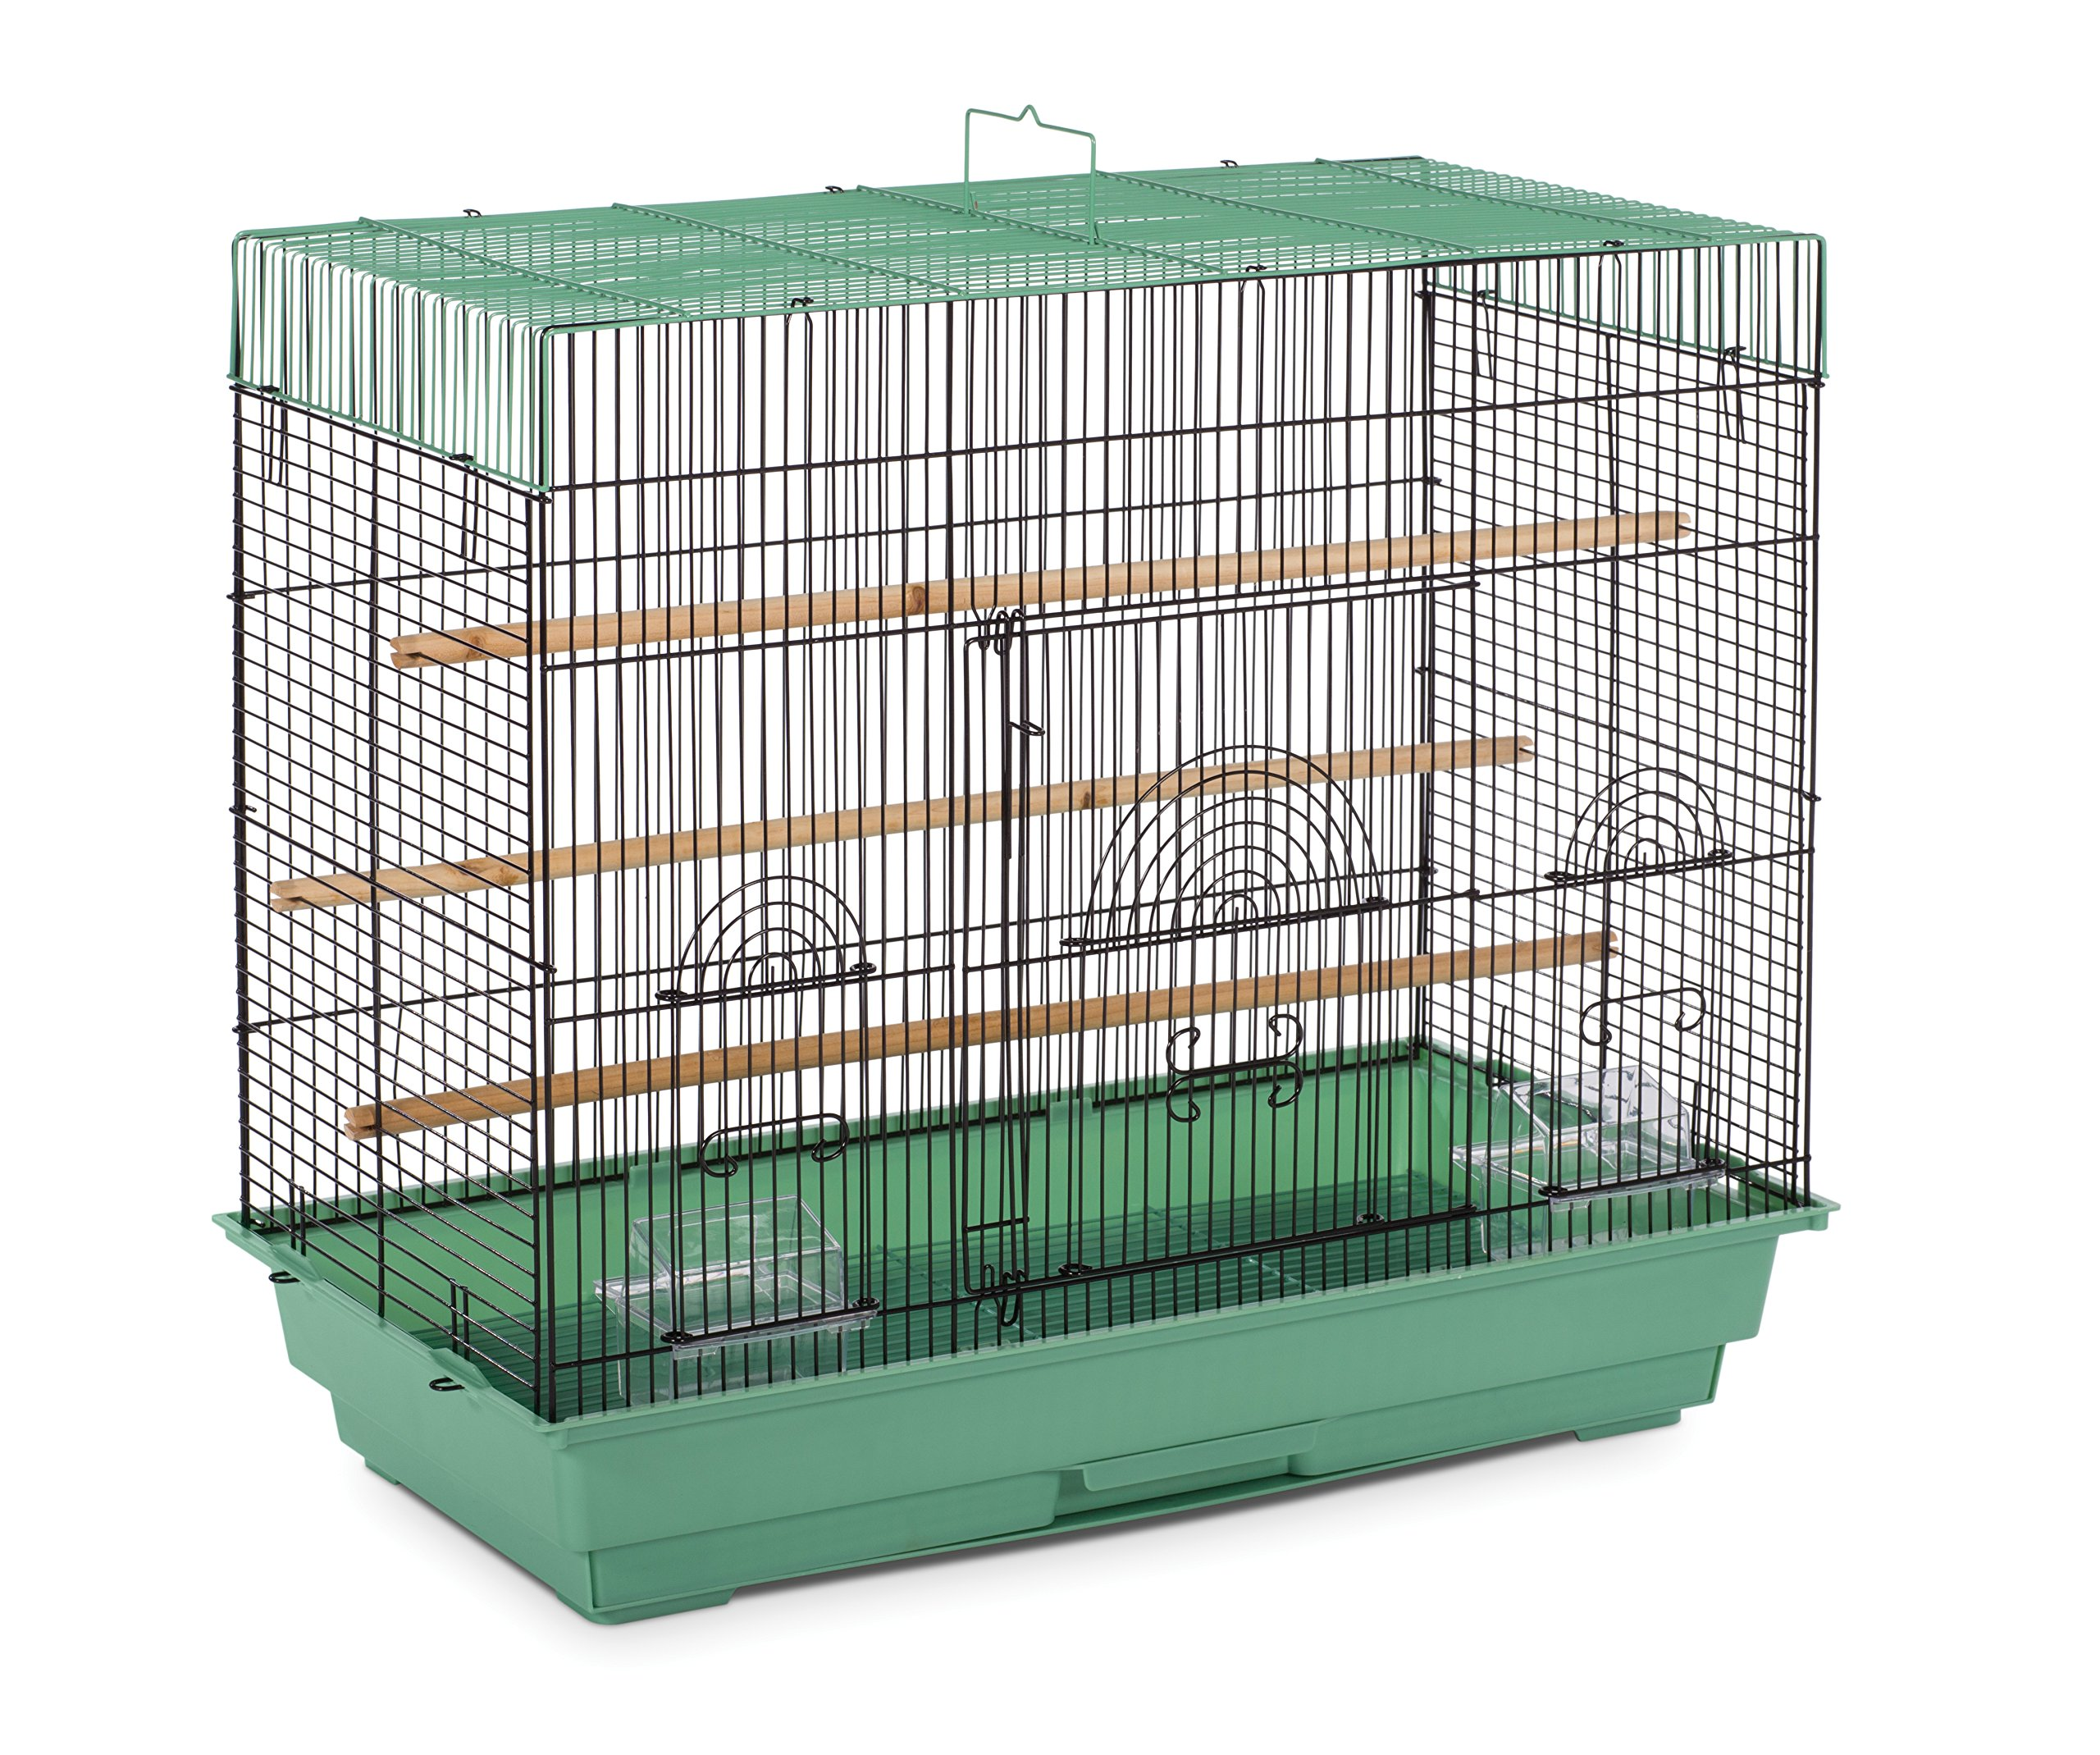 Prevue Pet Products SP1804-4 Flight Cage, Green/Black by Prevue Pet Products